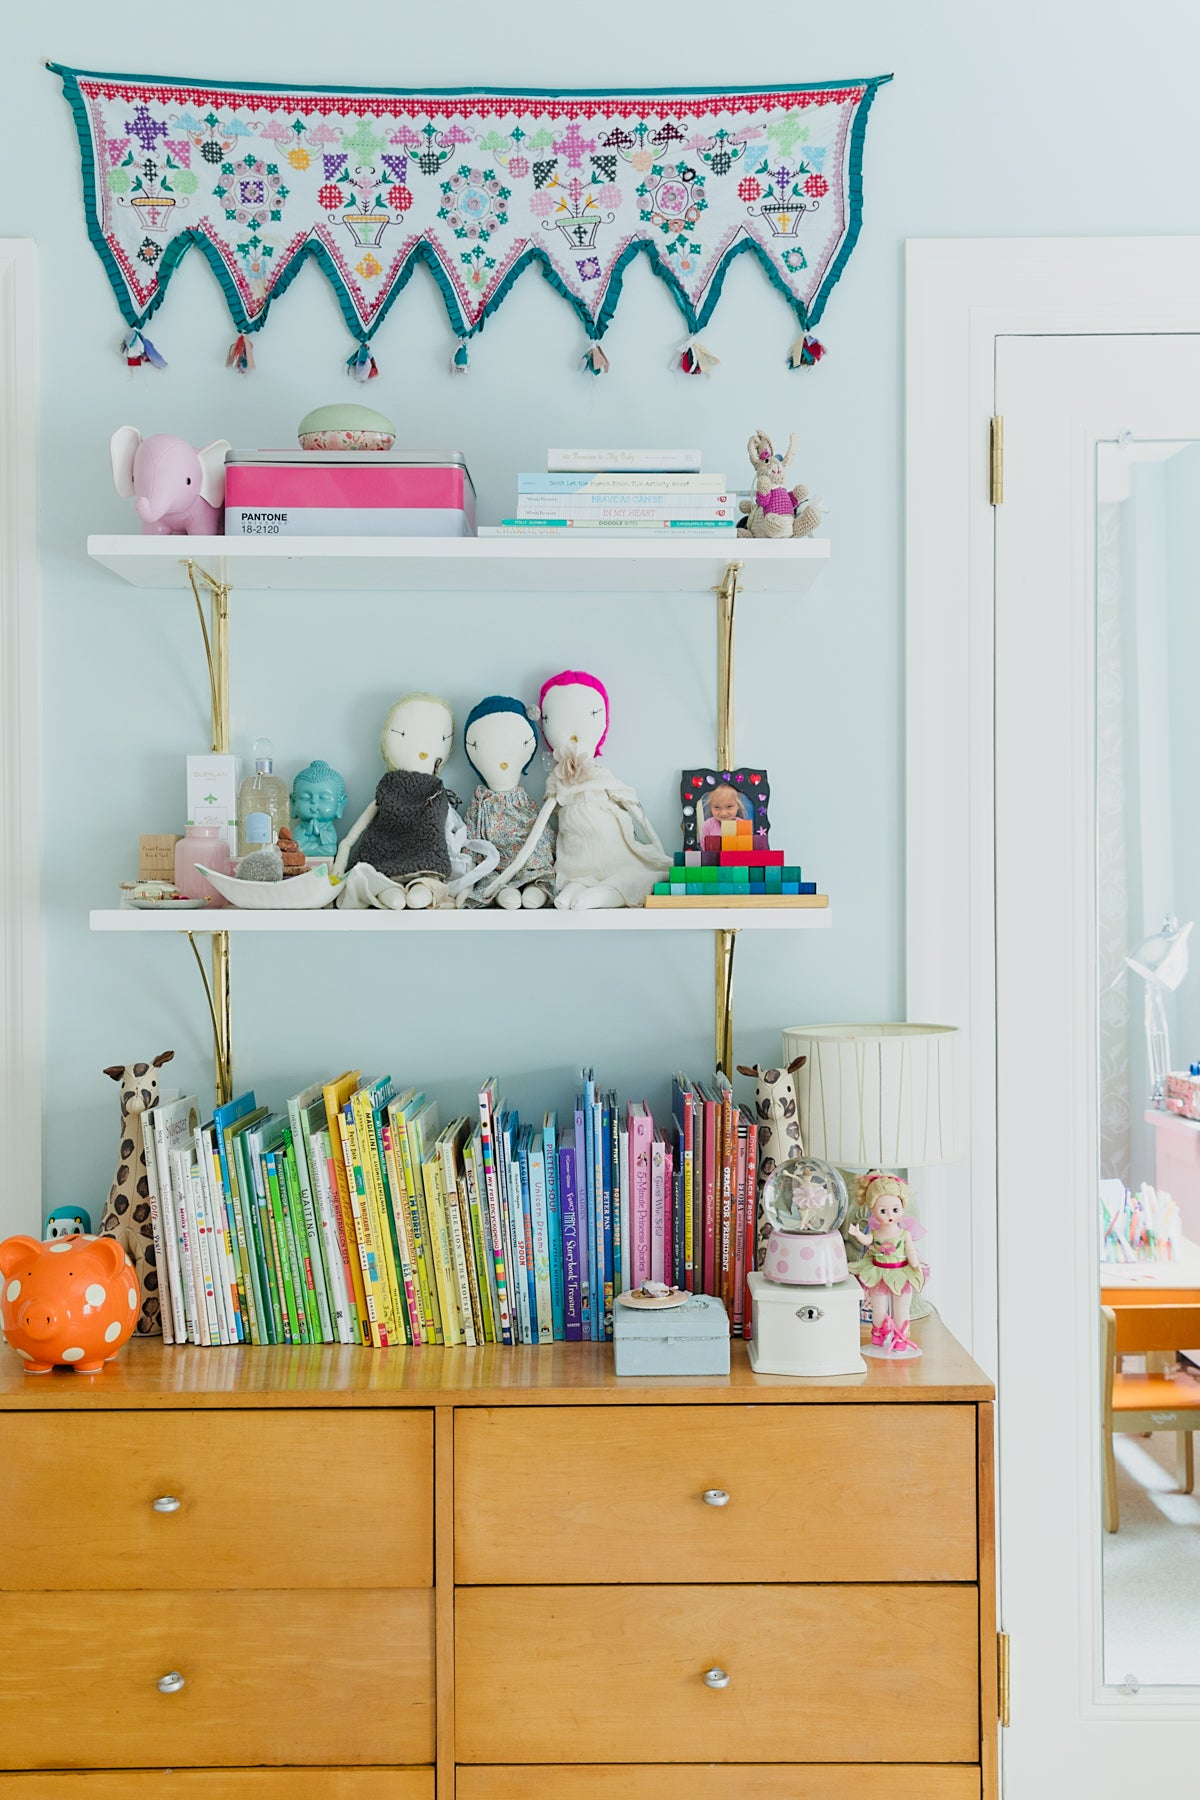 The Most Cluttered Areas of a Home (and the Hacks to Fix Them)